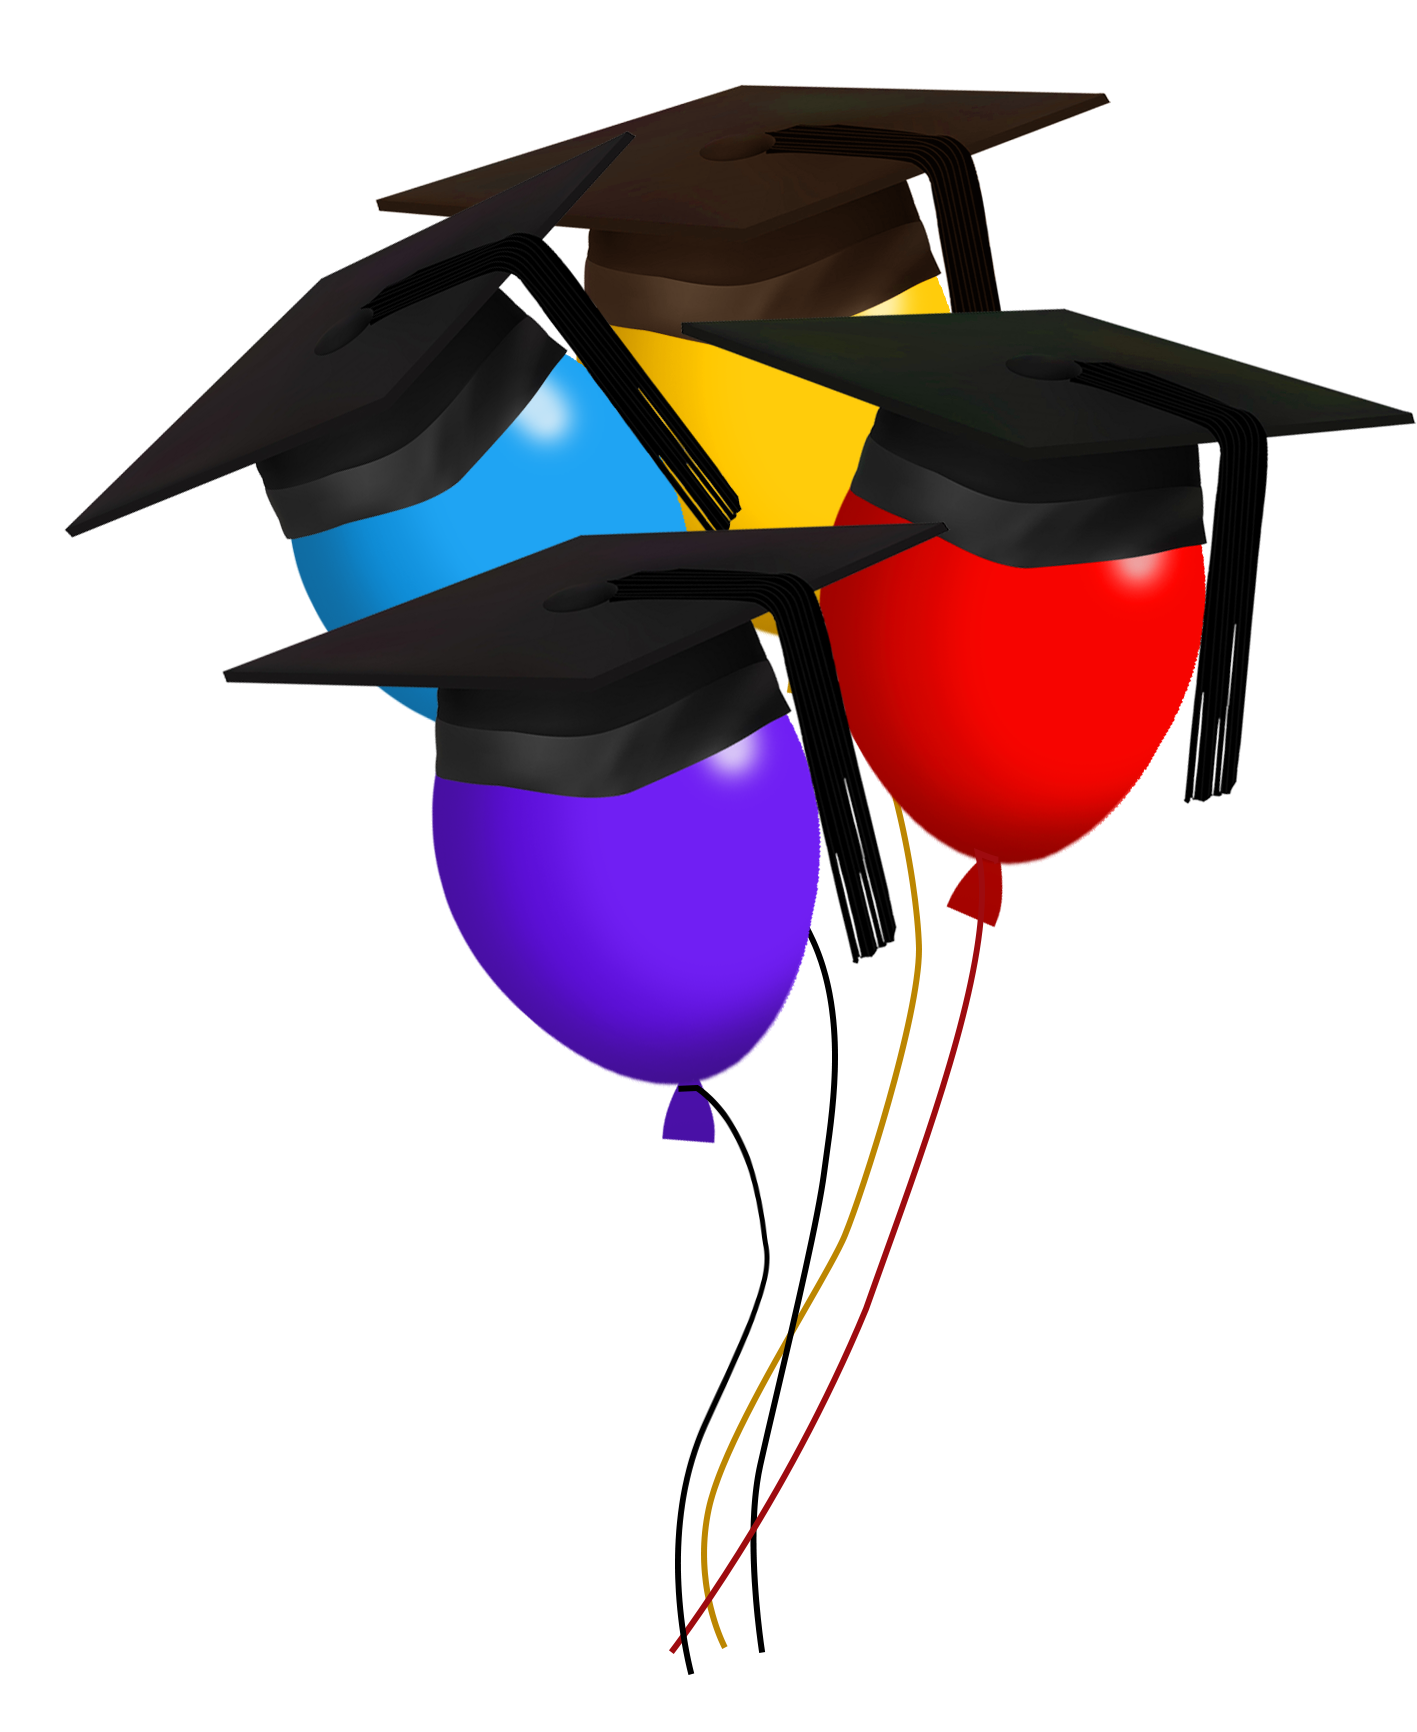 graduation day balloons with caps different colors